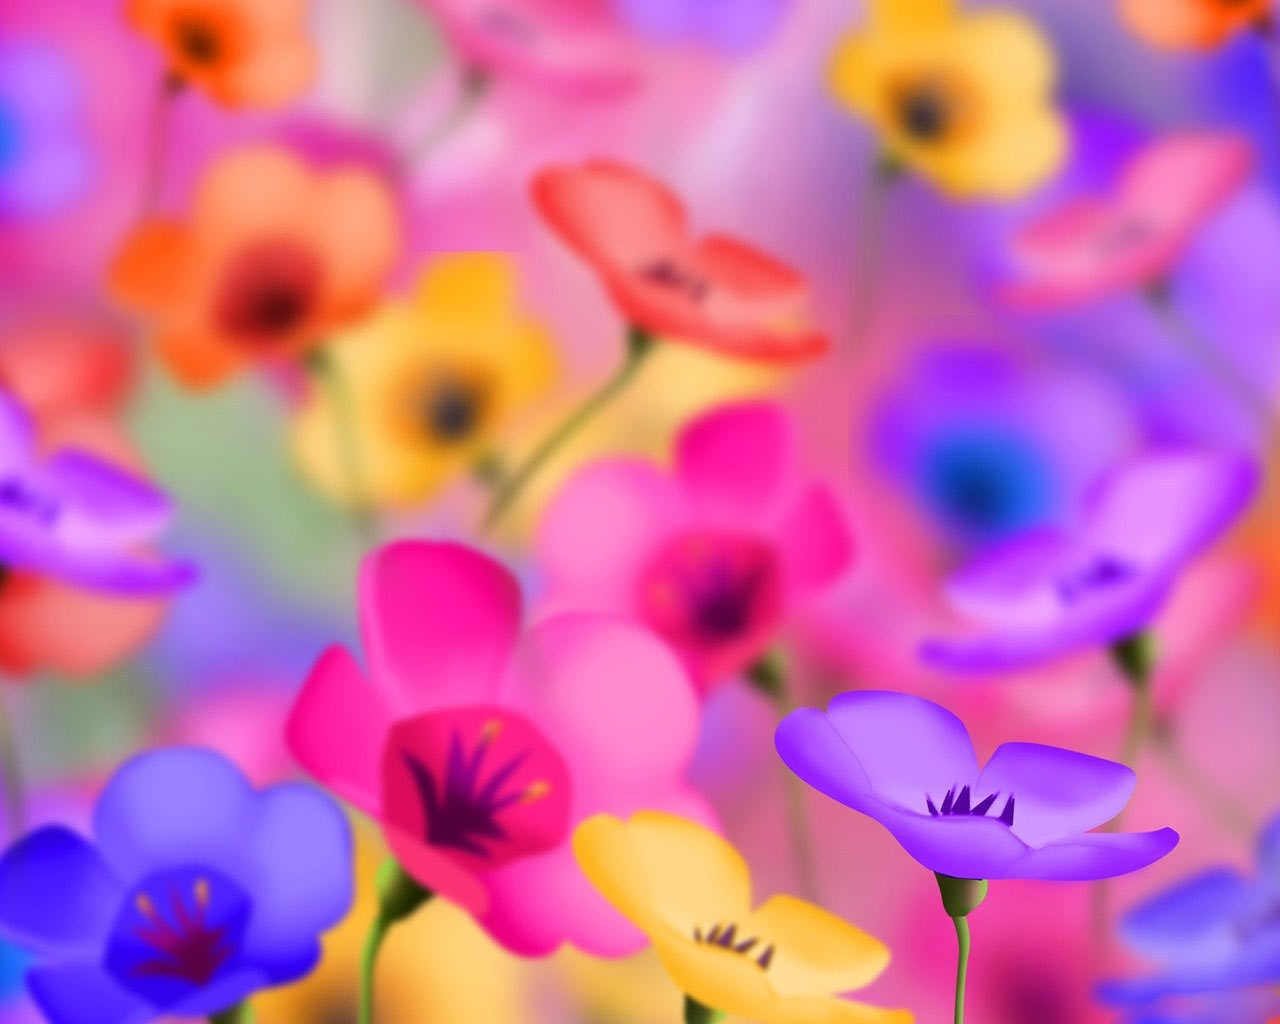 20 Cute Flower Backgrounds Wallpapers Freecreatives